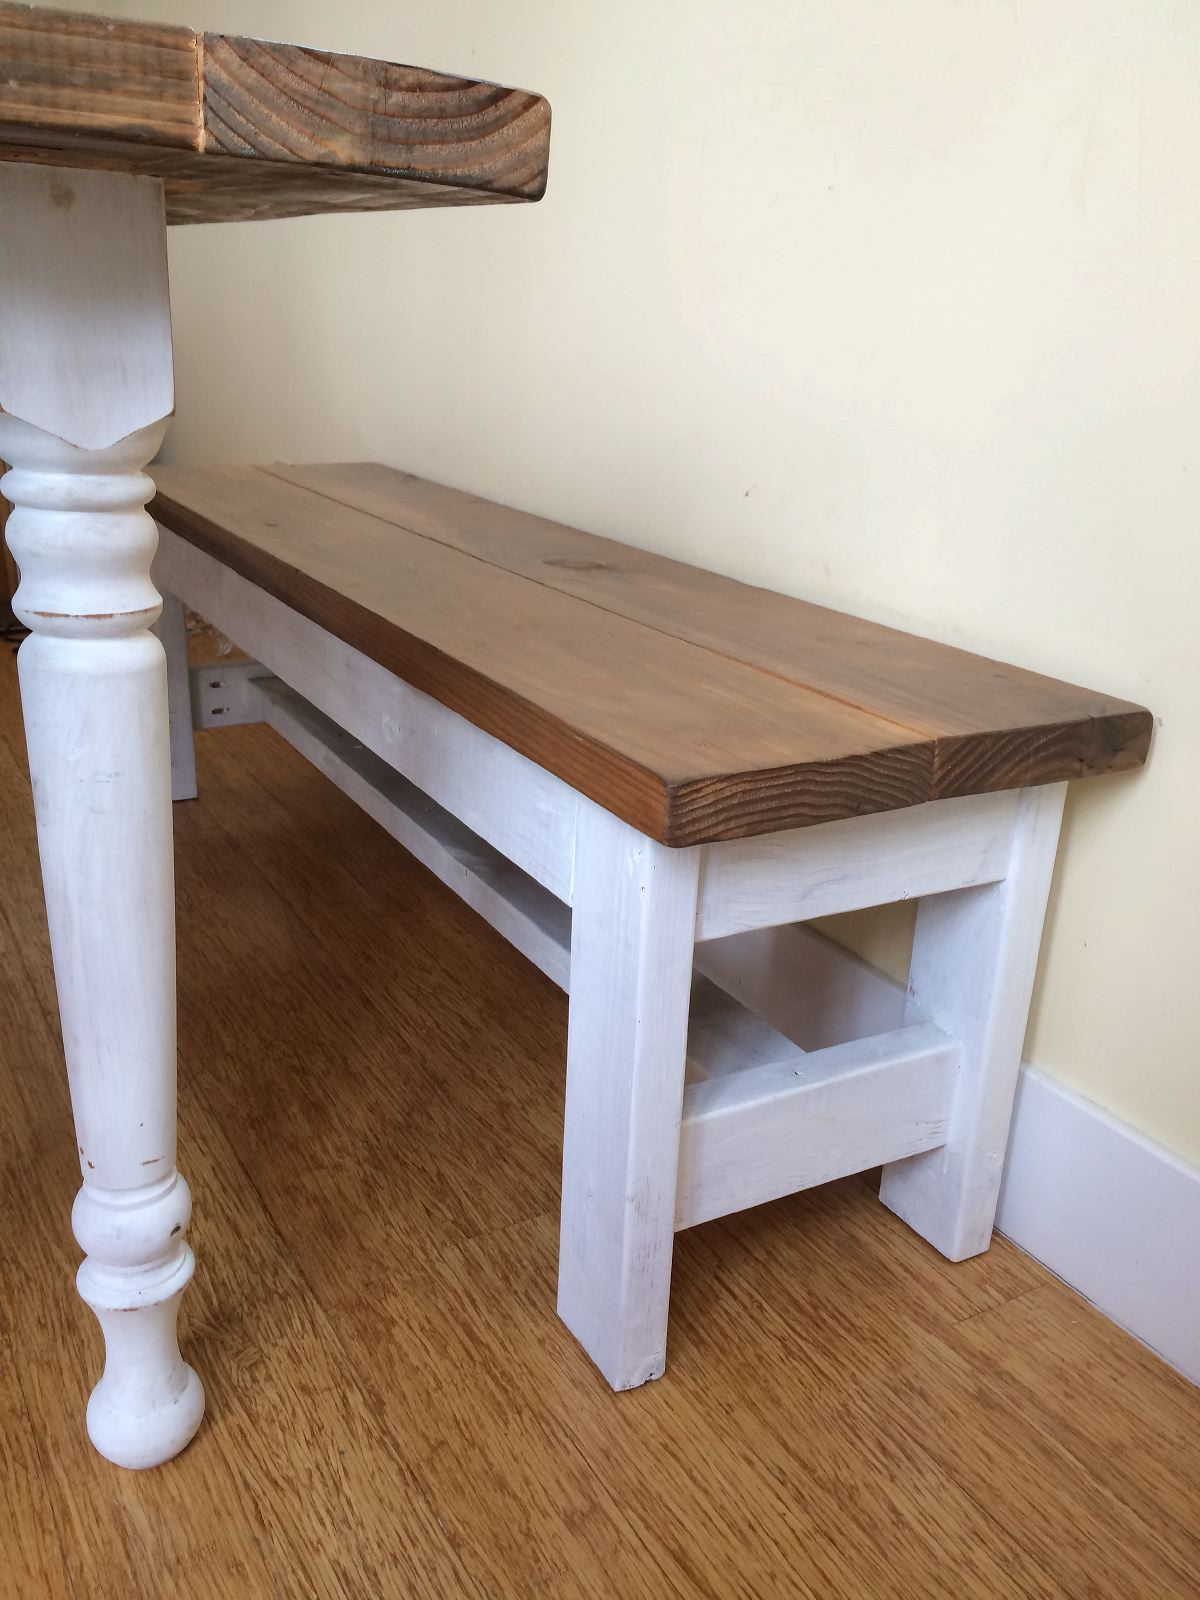 Diy building a farmhouse table and bench shirley How to build a farmhouse